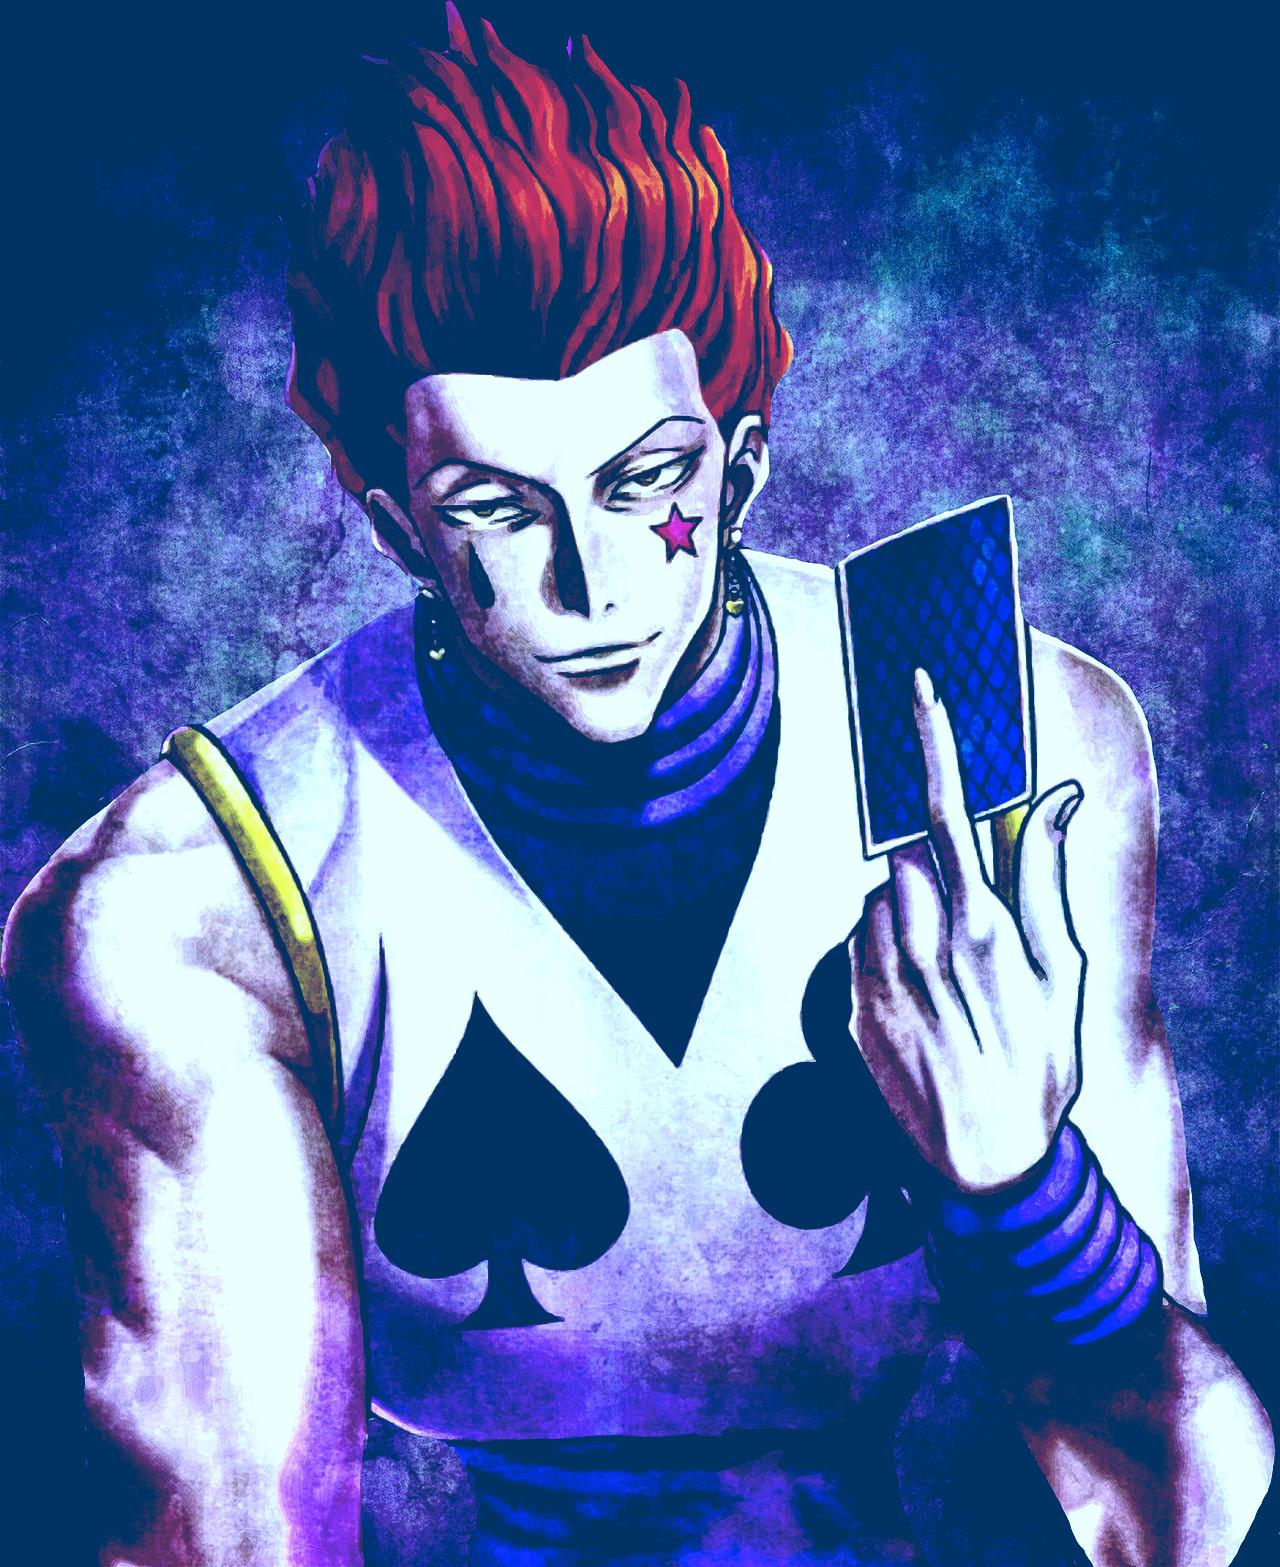 Hisoka Morow Wallpapers Top Free Hisoka Morow Backgrounds